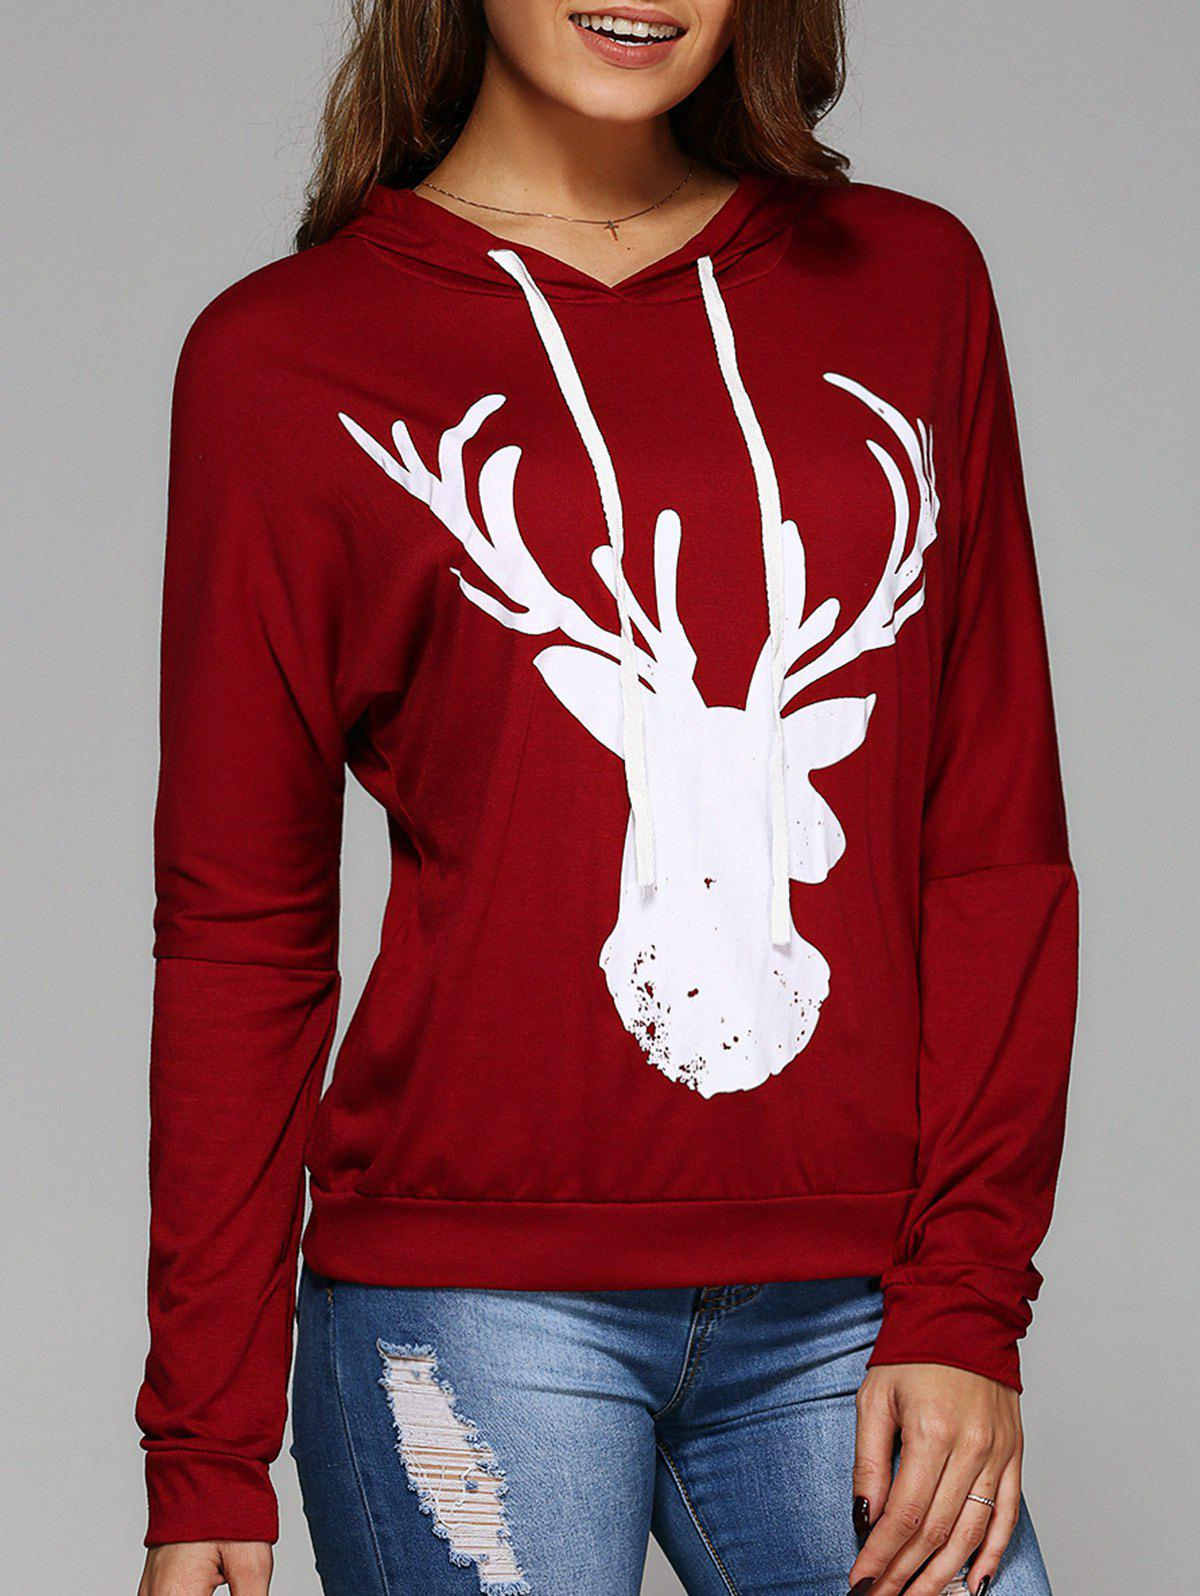 Long Sleeve Deer Print Christmas Hooded T-Shirt - RED L